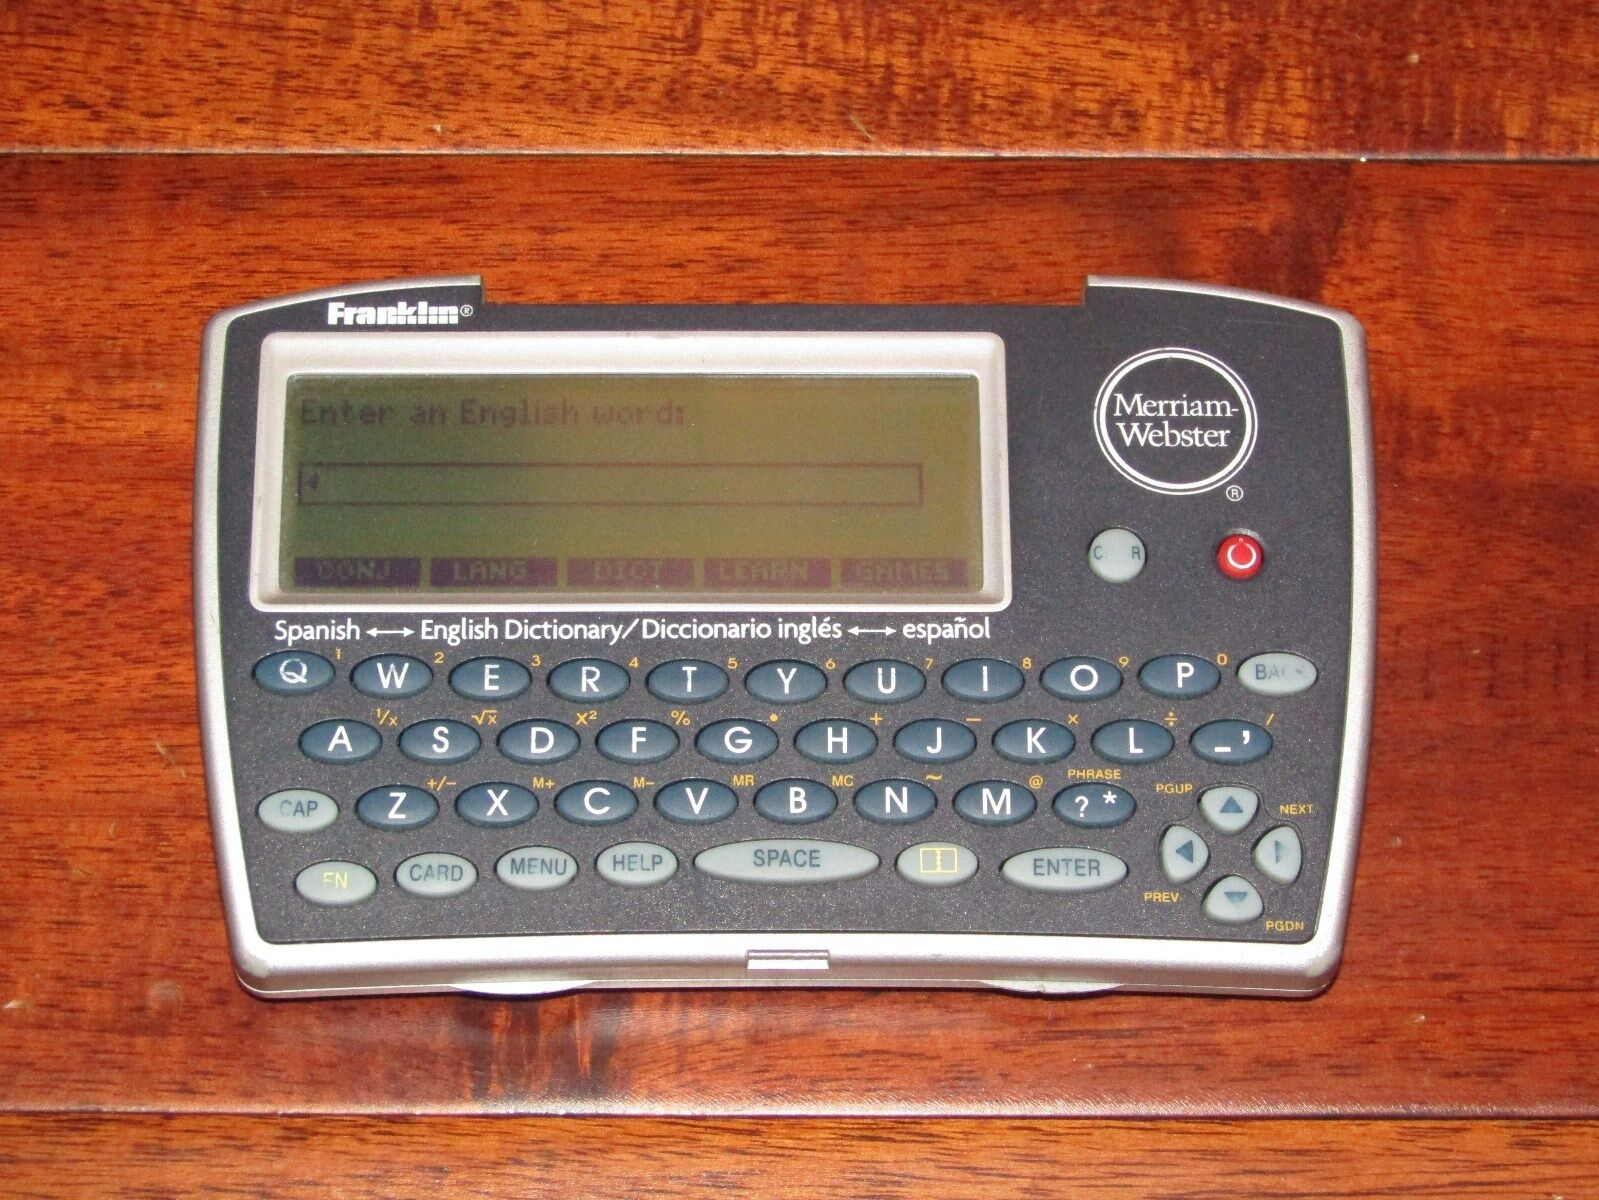 Franklin DBE-1450 Merriam-Webster Spanish-English Dictionary